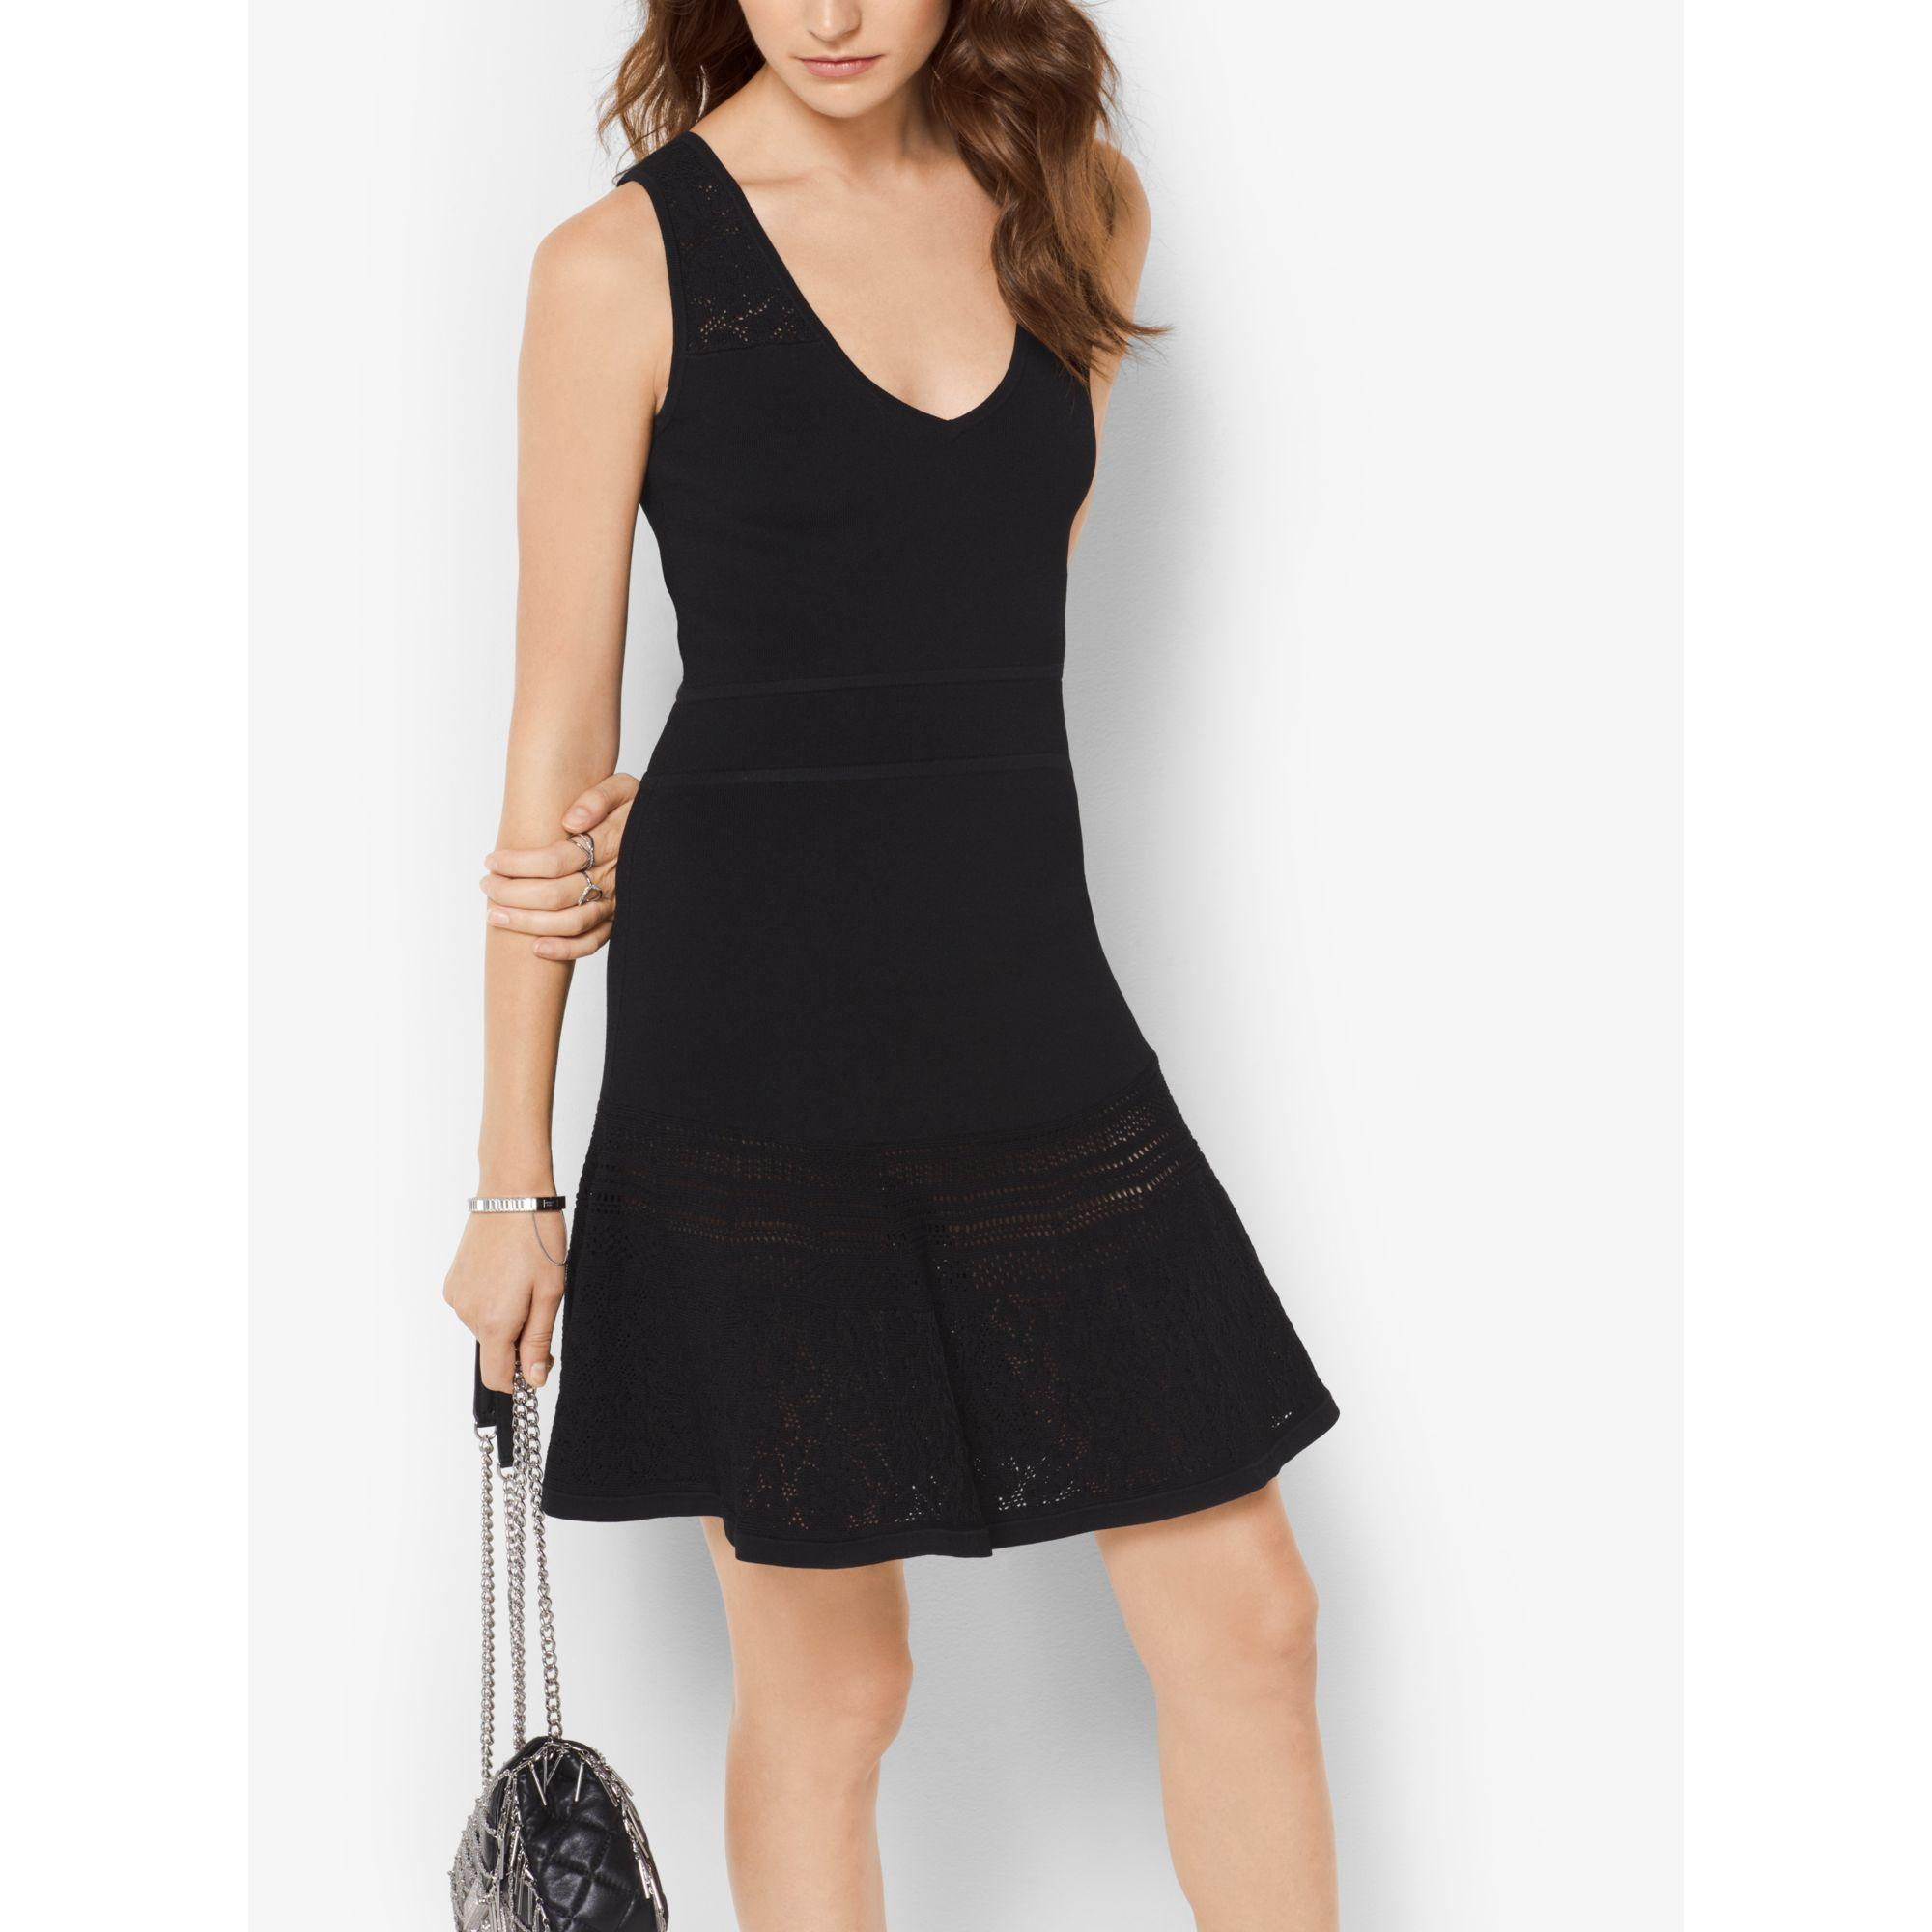 2b1ec978f444 Michael Kors Knitted Fit-and-flare Dress in Black - Lyst